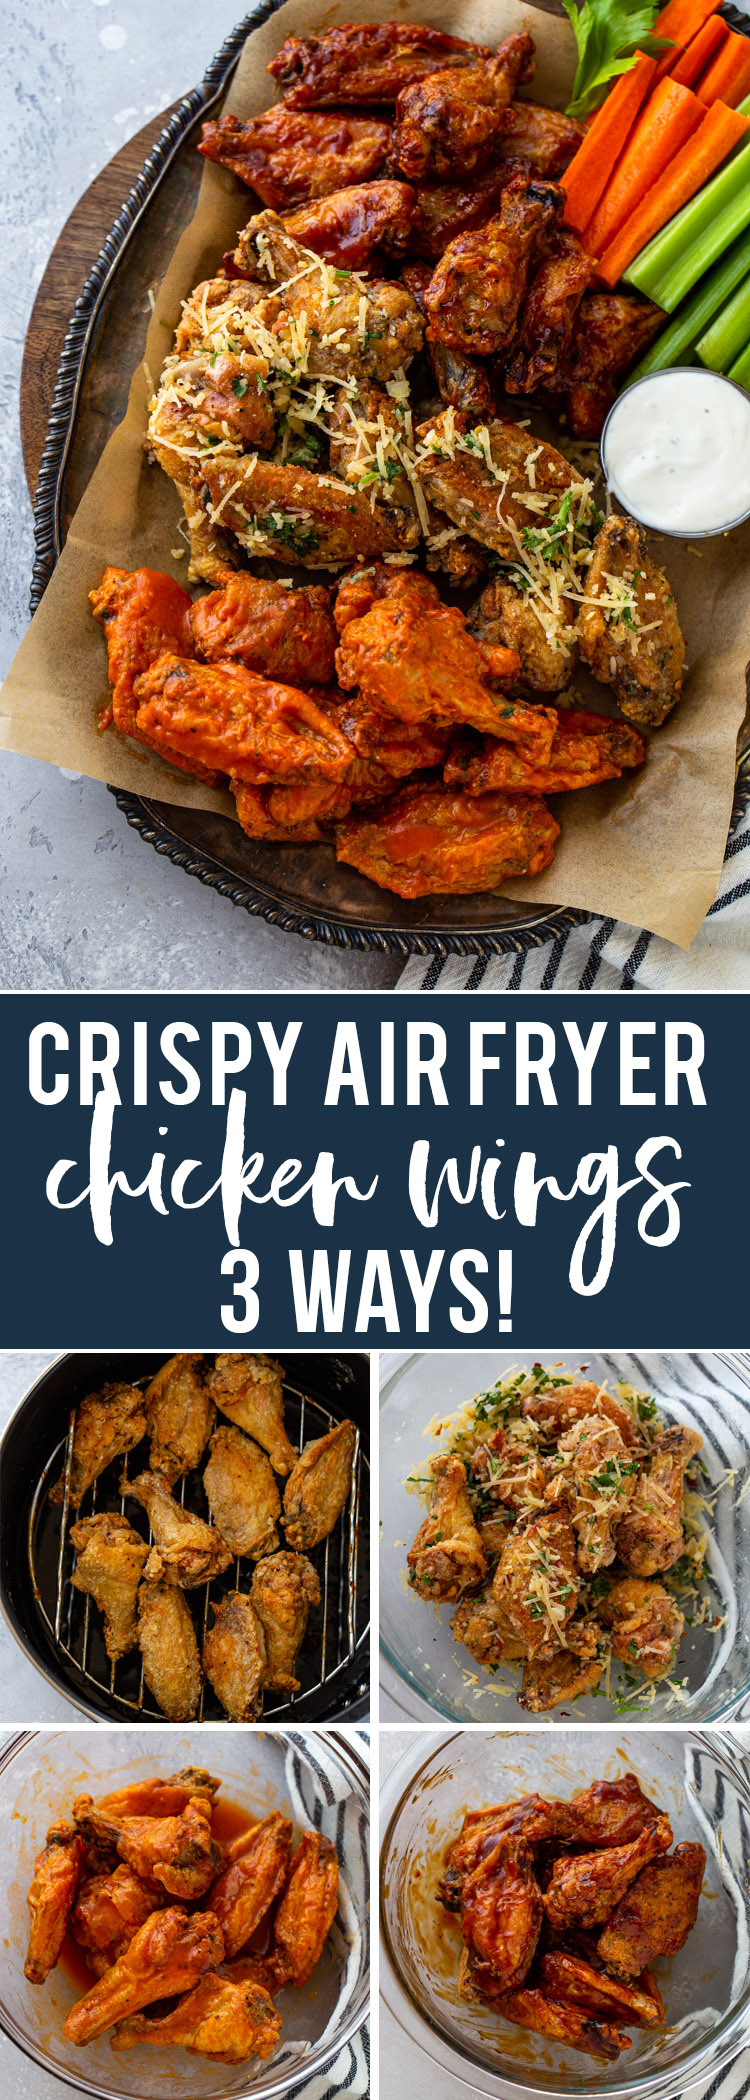 Super CRISPY Air Fryer Chicken Wings (3 Ways!)